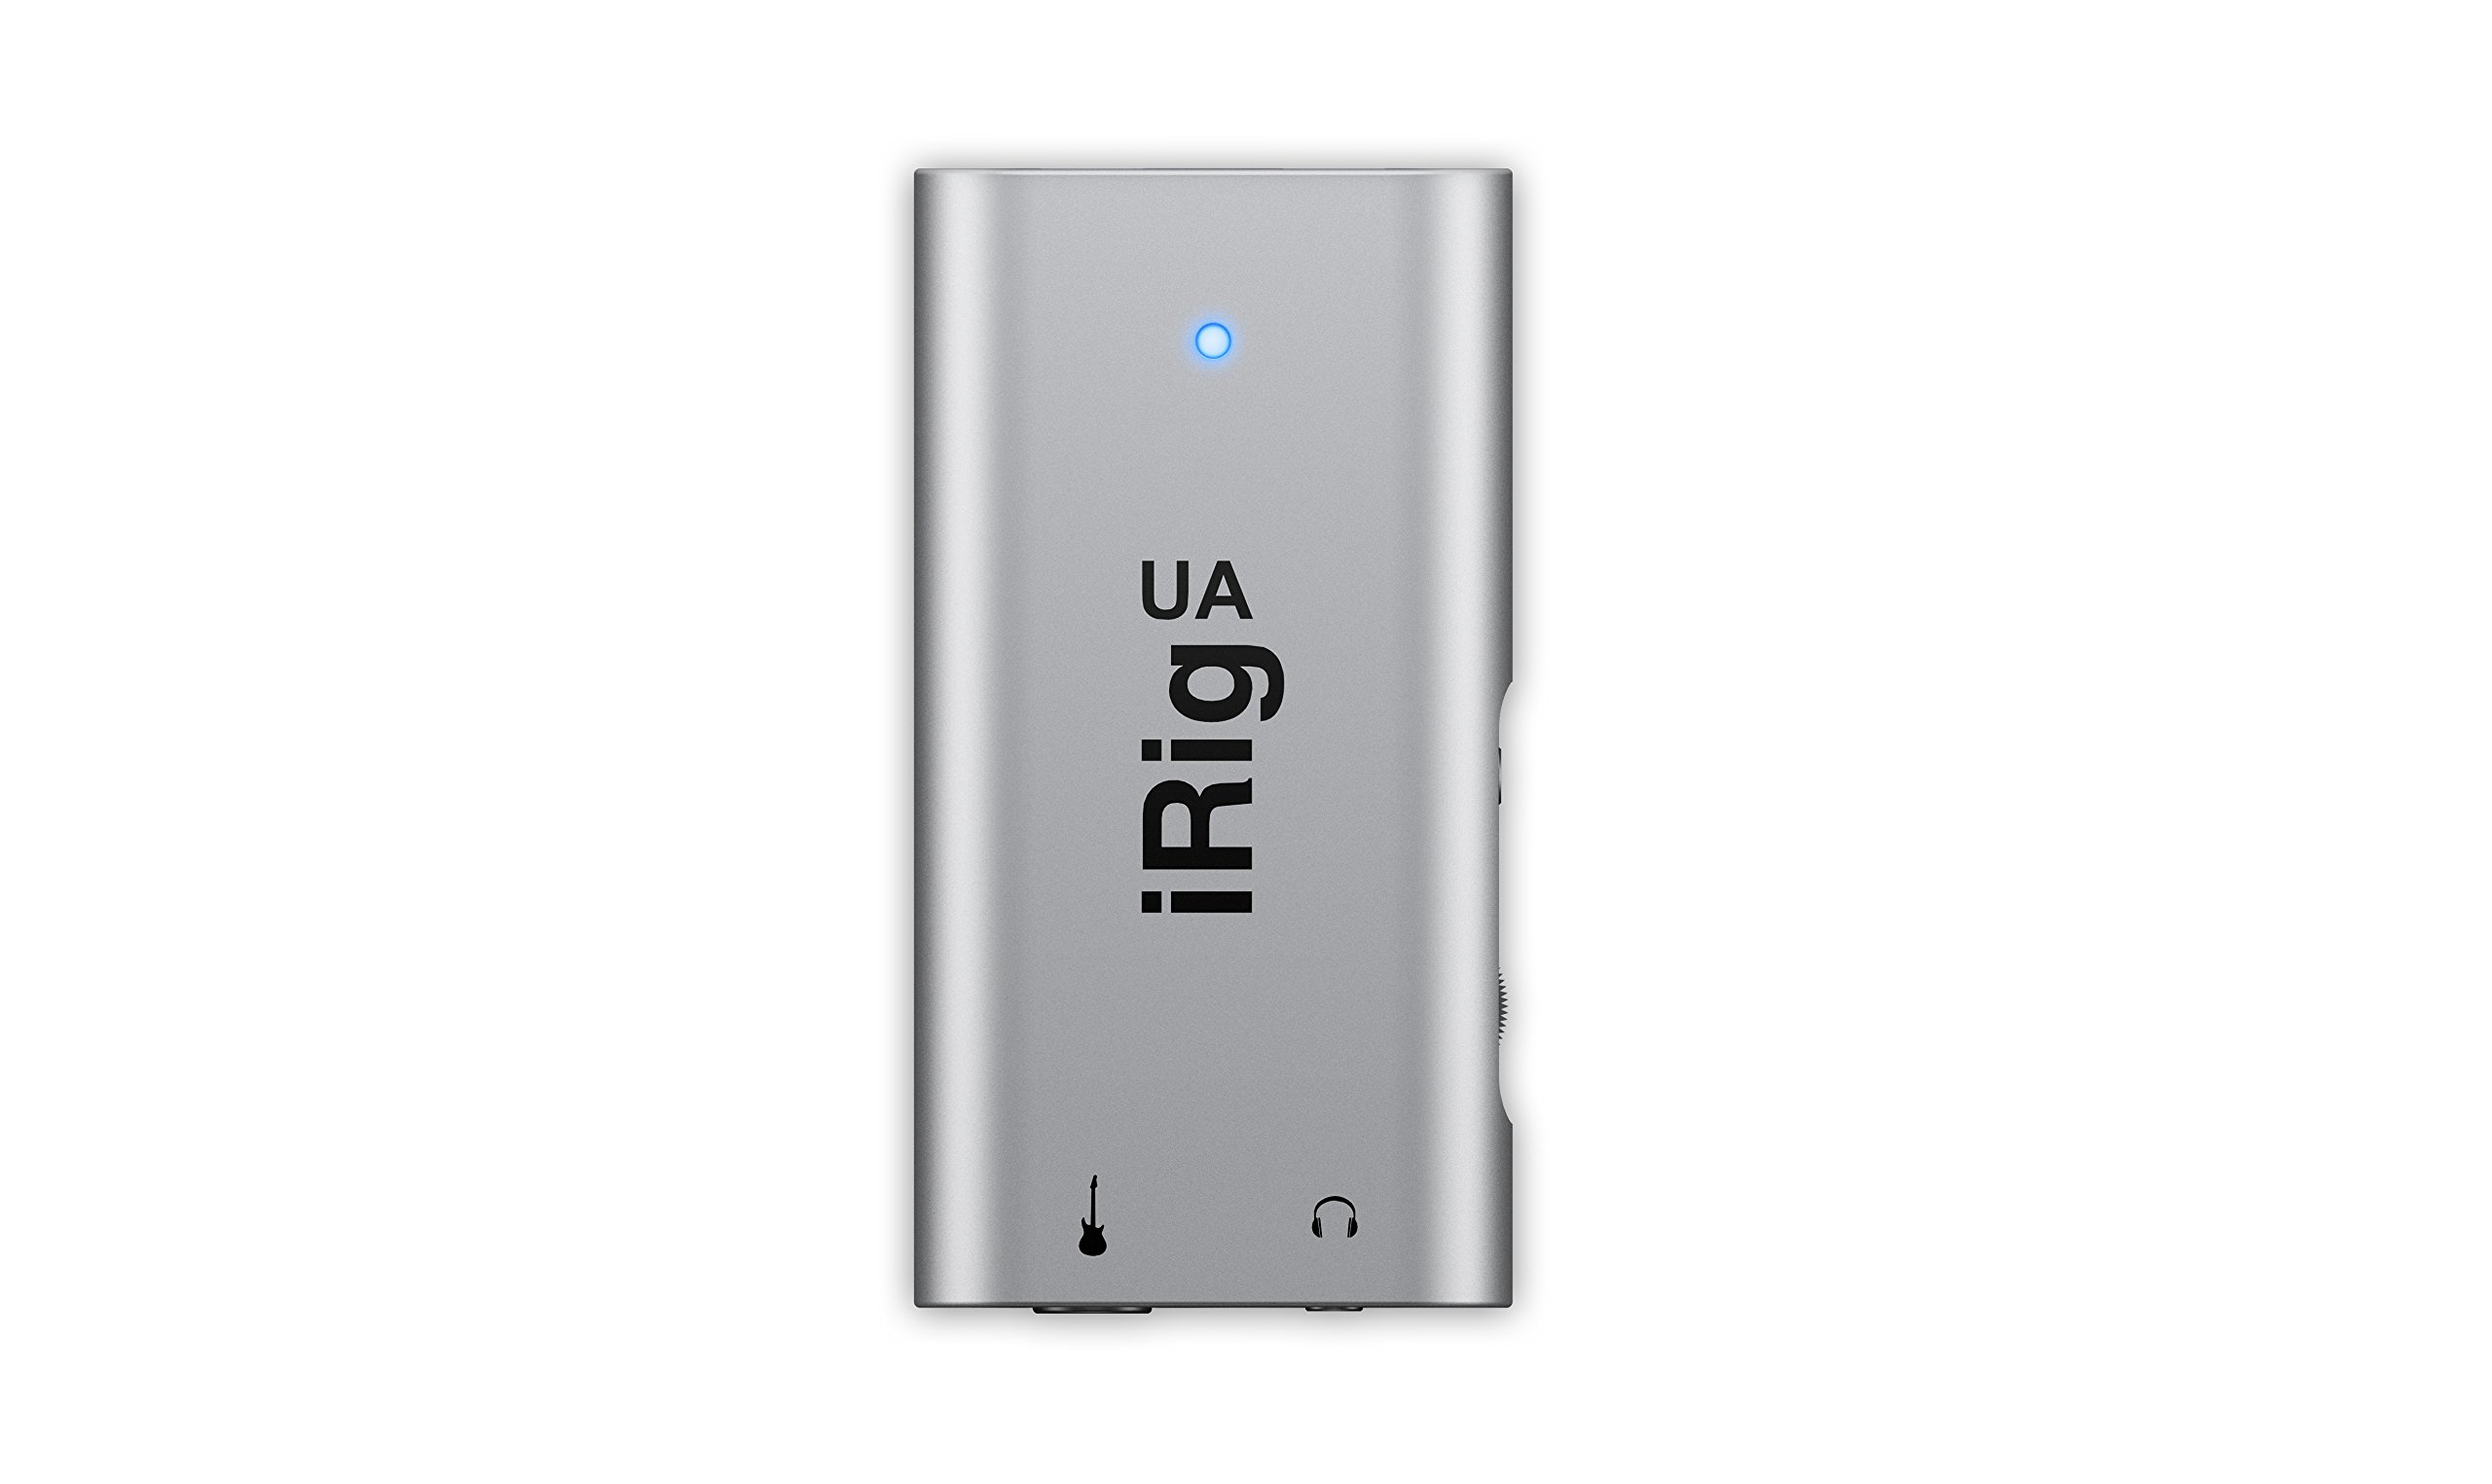 IK Multimedia iRig UA universal guitar effects processor and interface for Android devices by IK Multimedia